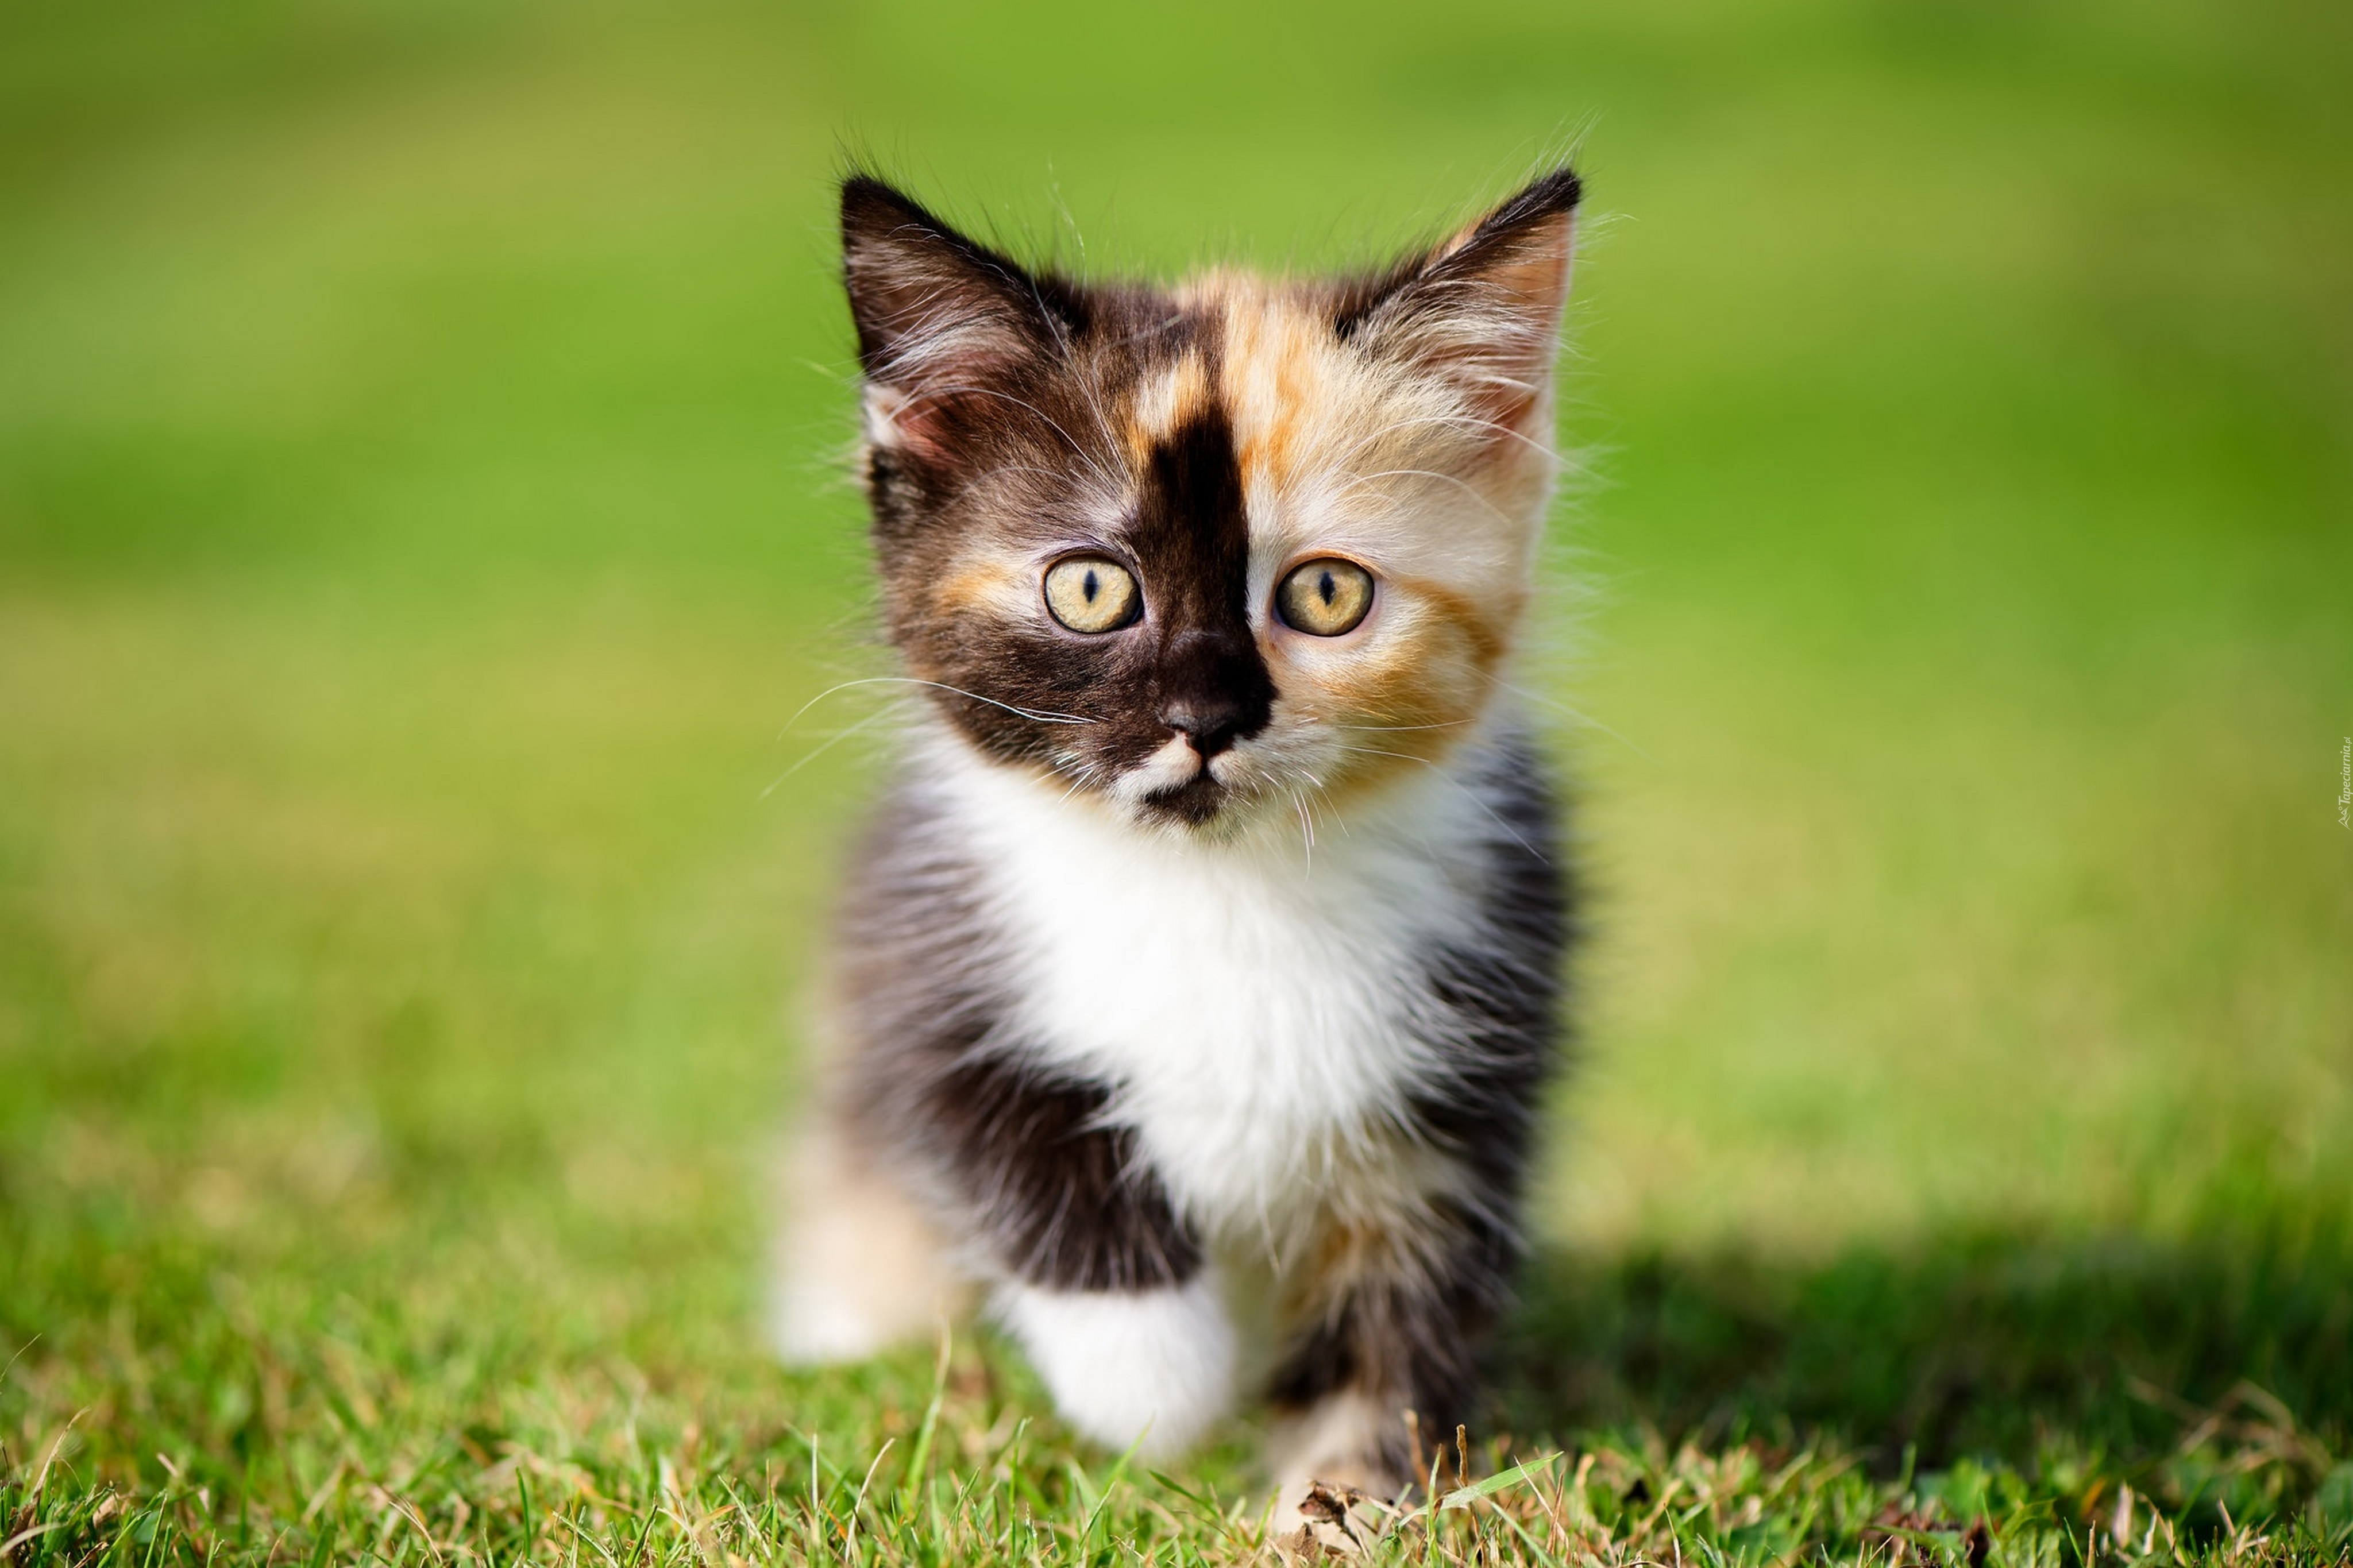 Cute White Cat Images Hd